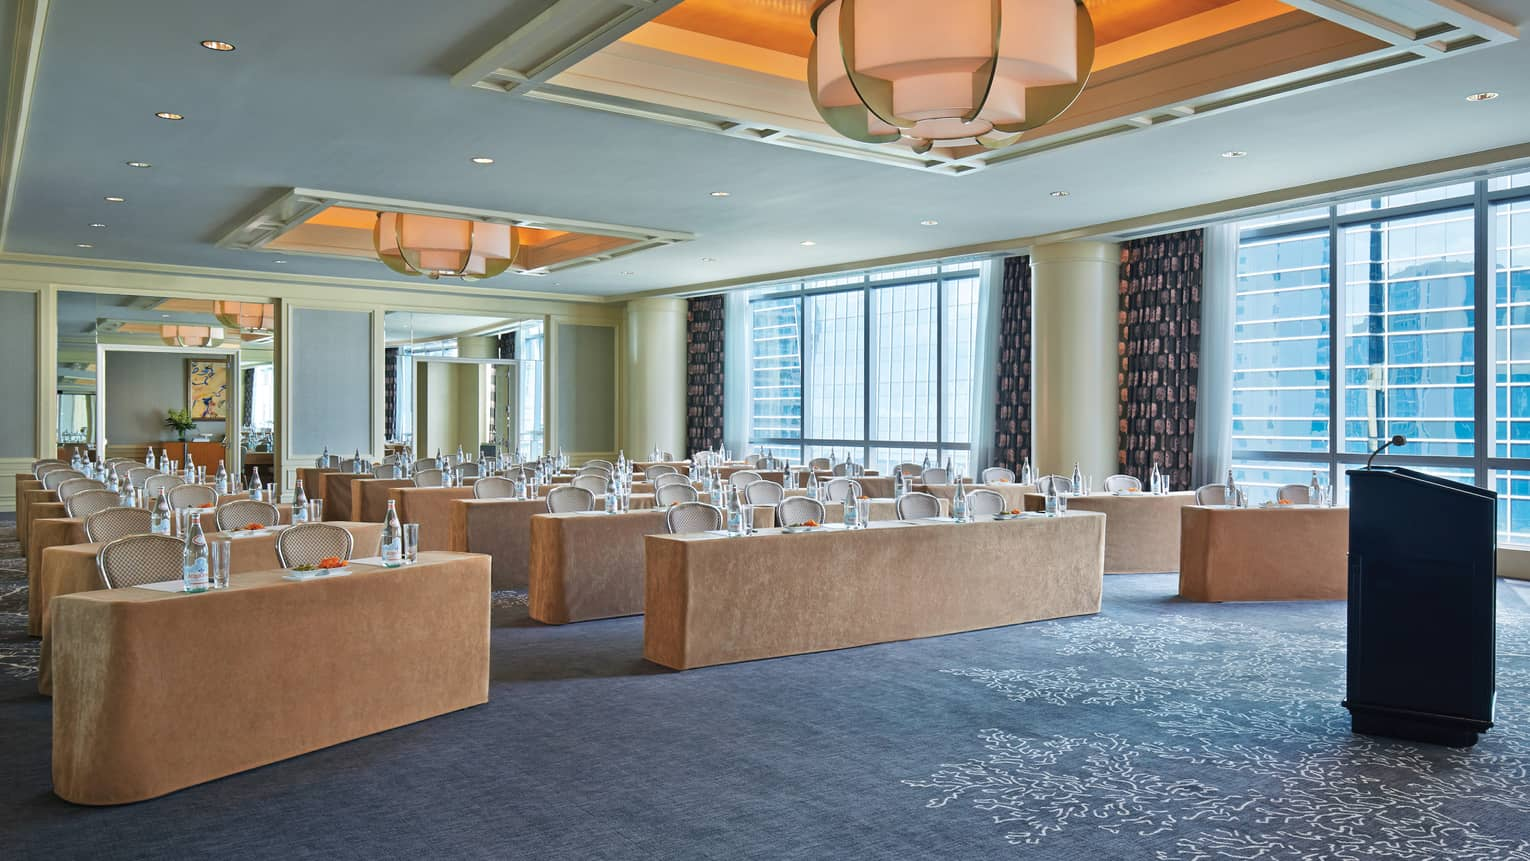 Rows of meeting tables in bright function room